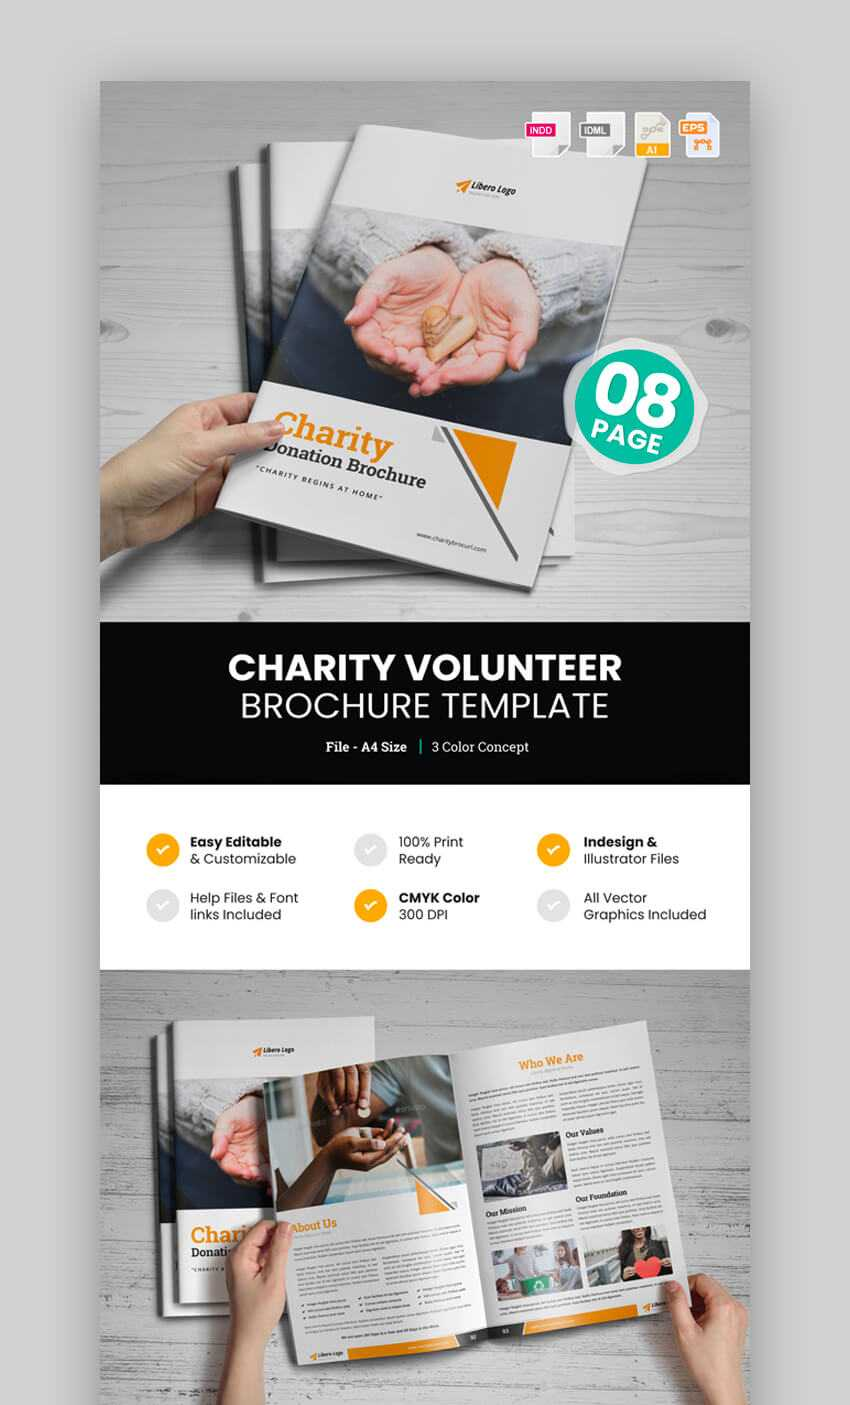 20 Best Professional Business Brochure Design Templates For 2019 pertaining to Volunteer Brochure Template